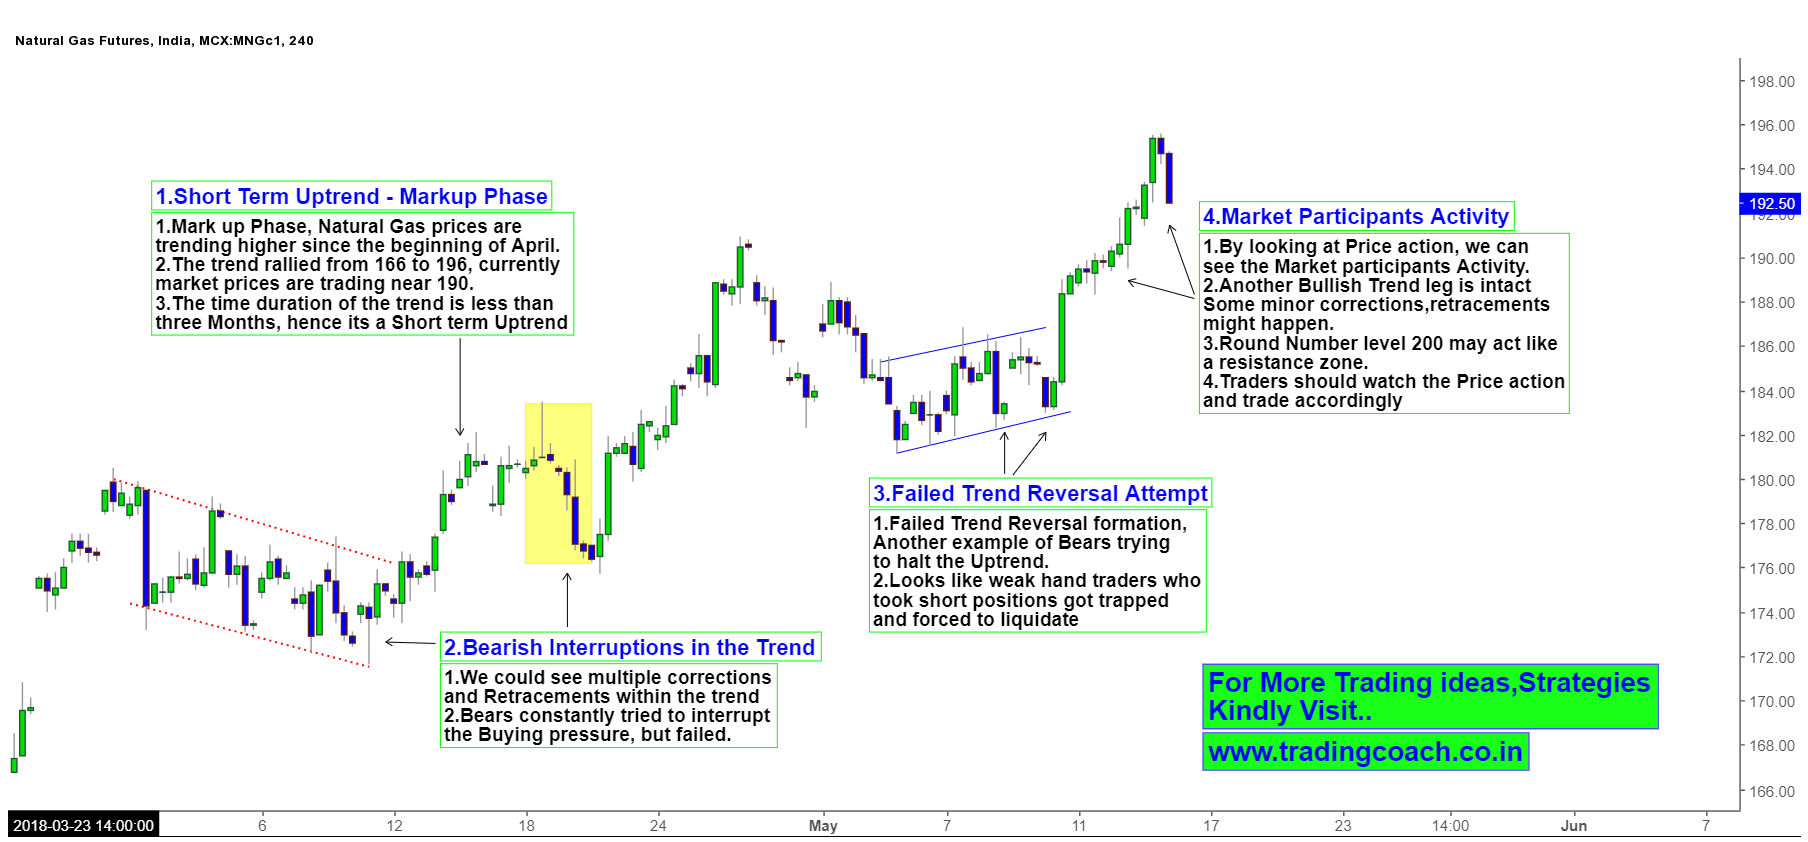 Natural Gas - Price Action in 4h chart reveals short term uptrend